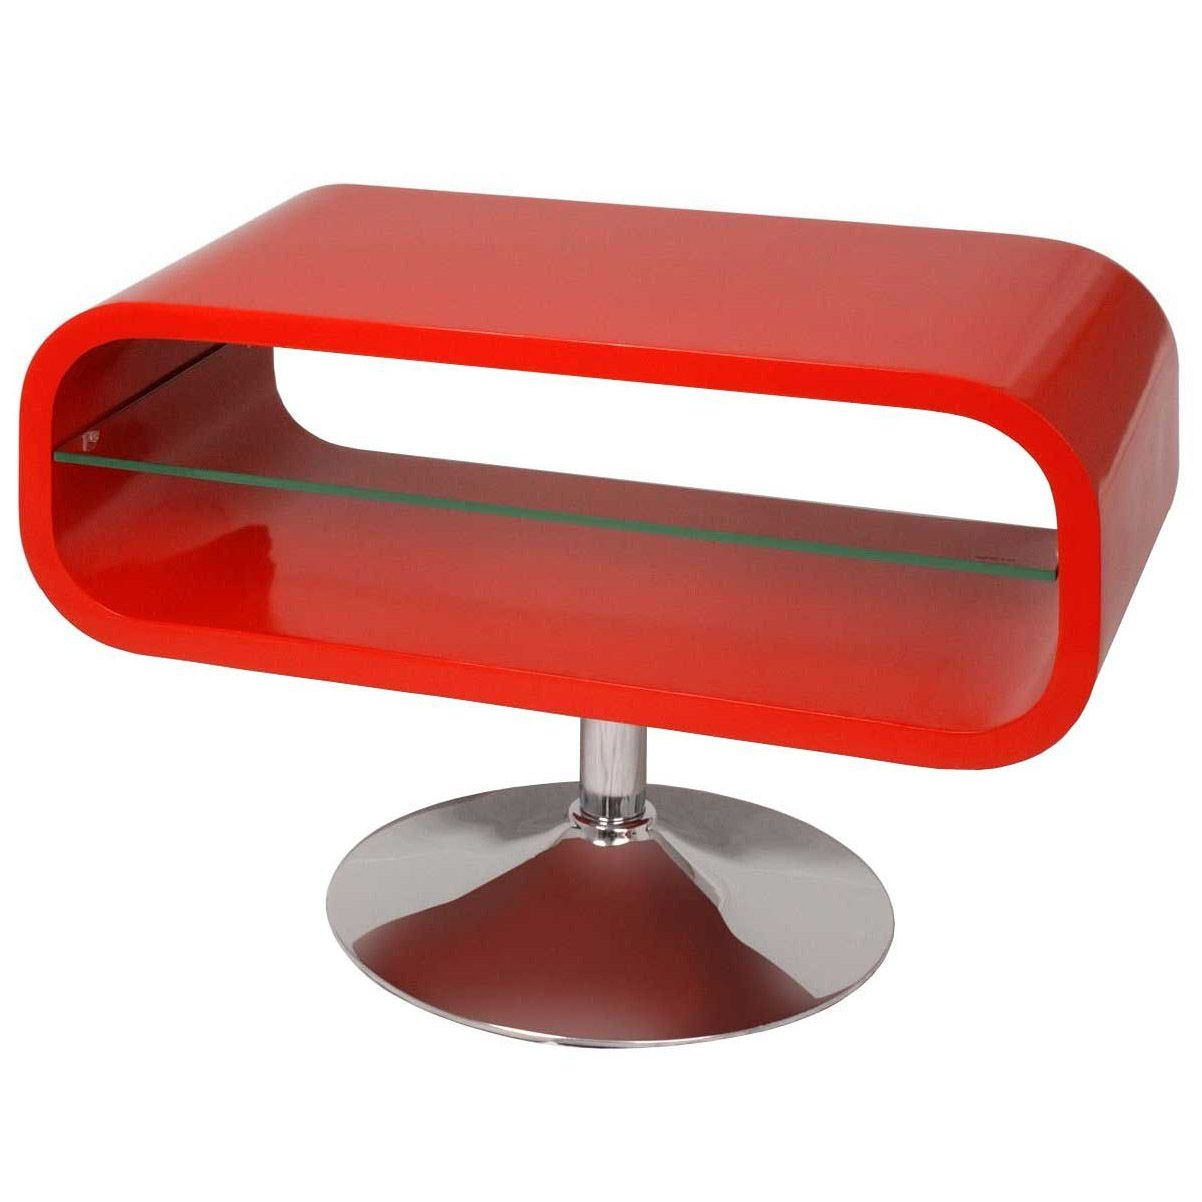 Etagere Rouge Fly Verre Satine X Cm With Etagere Rouge Fly  # Meuble Tv Pivotant Alinea